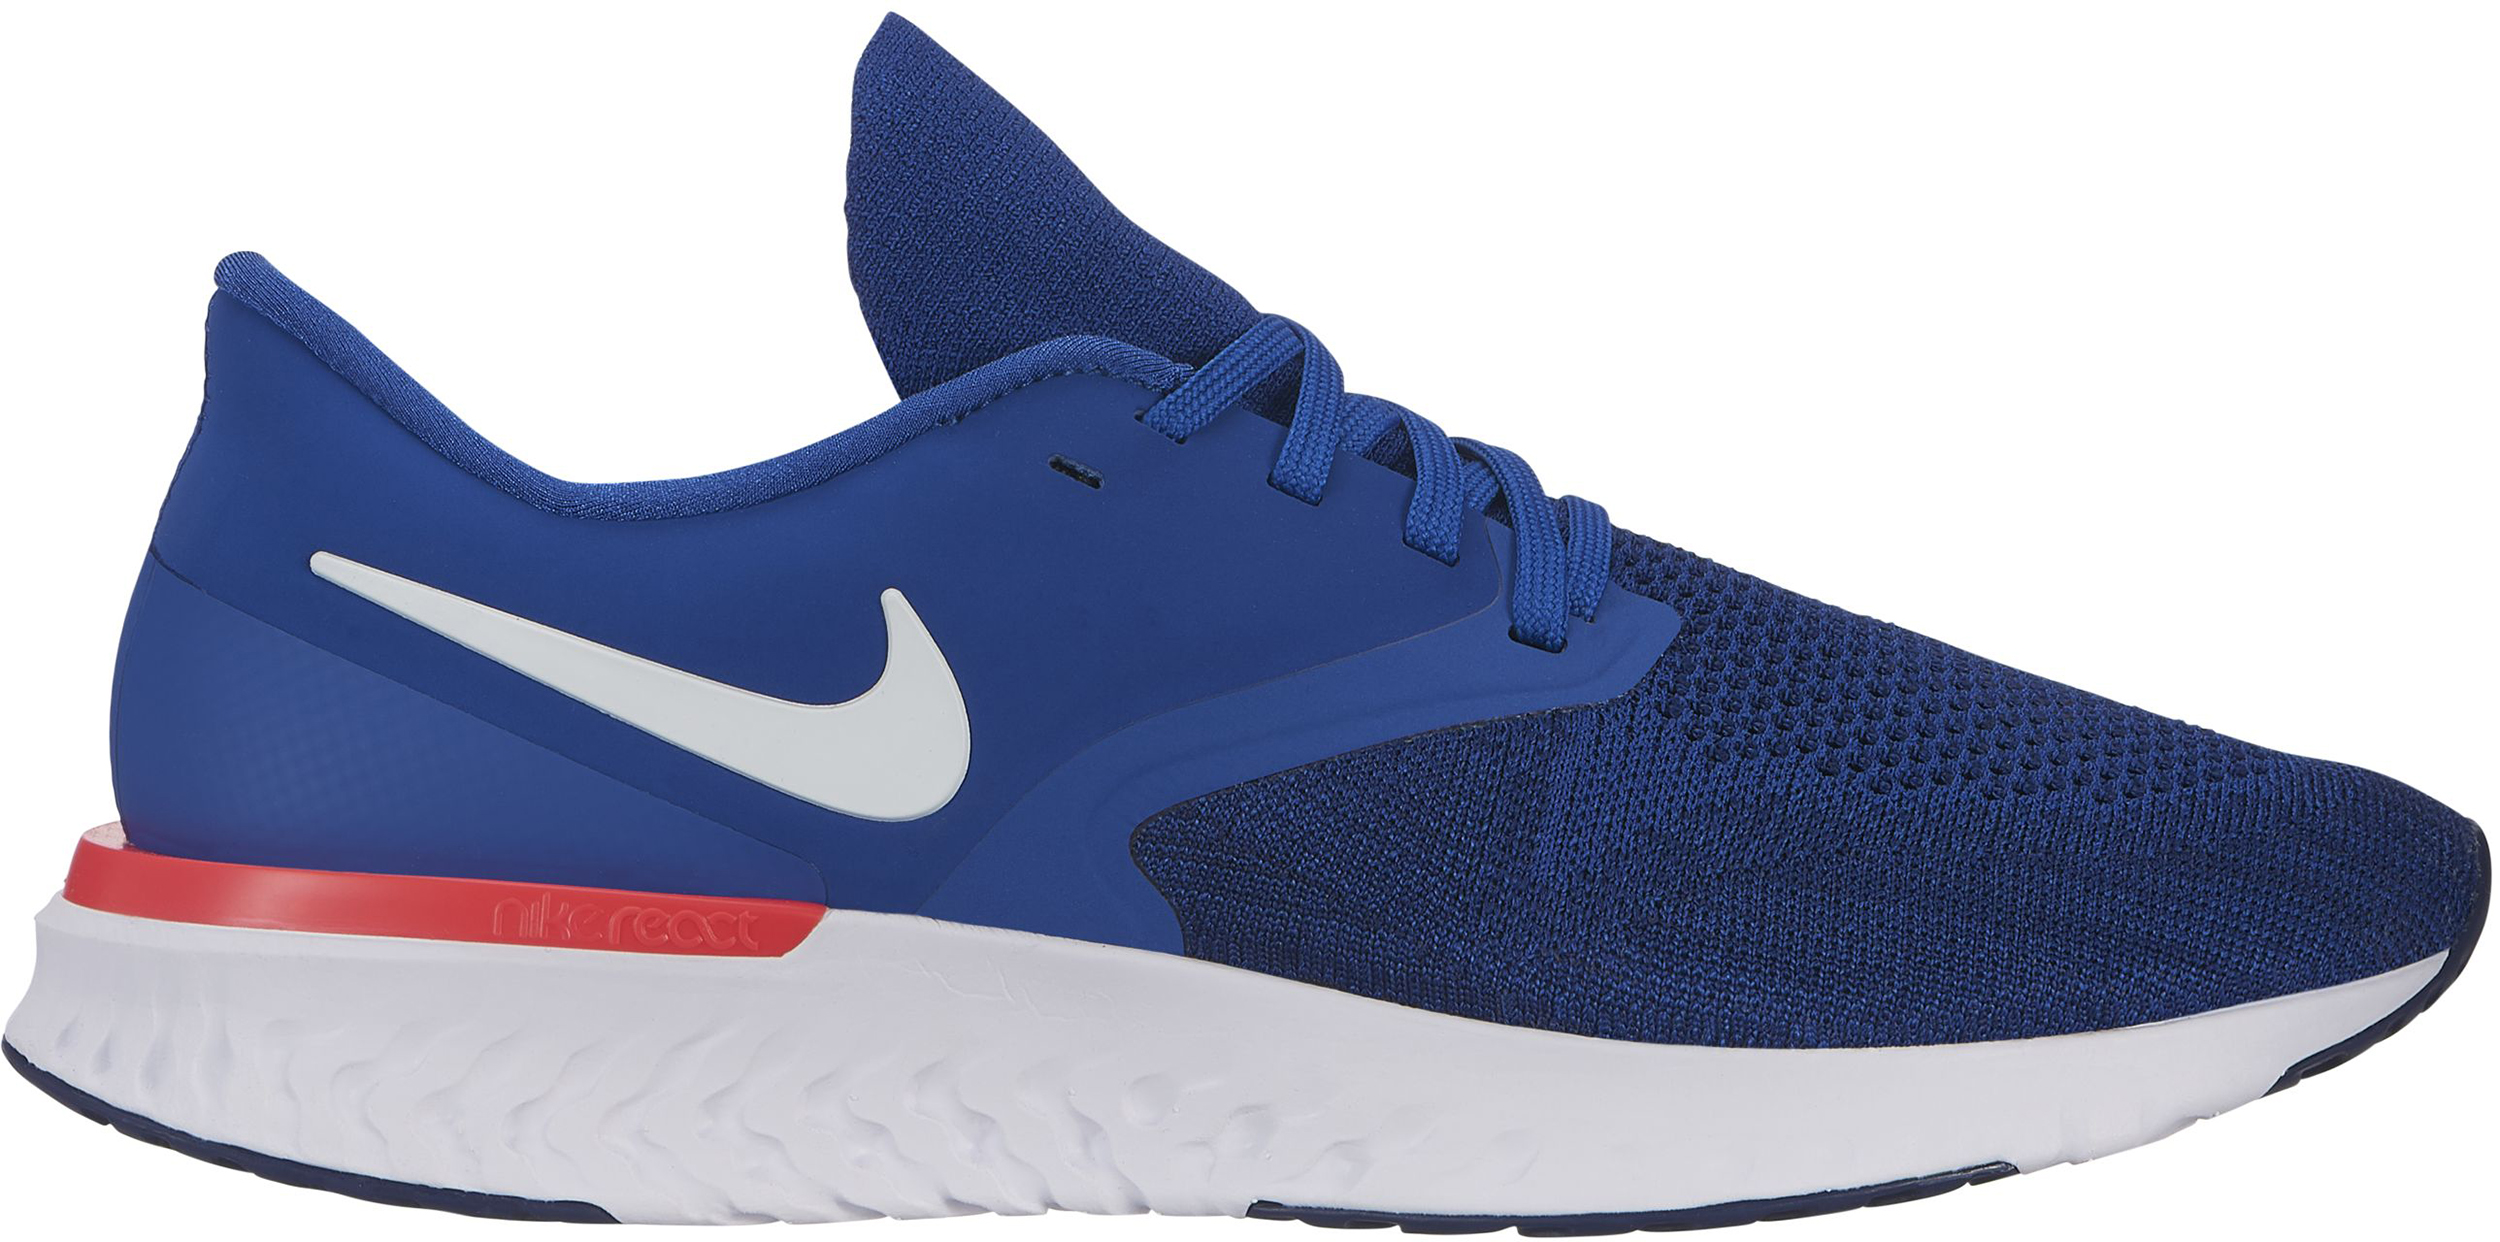 b4c555a230a Nike Odyssey React Flyknit 2 Road Running Shoes - Men s